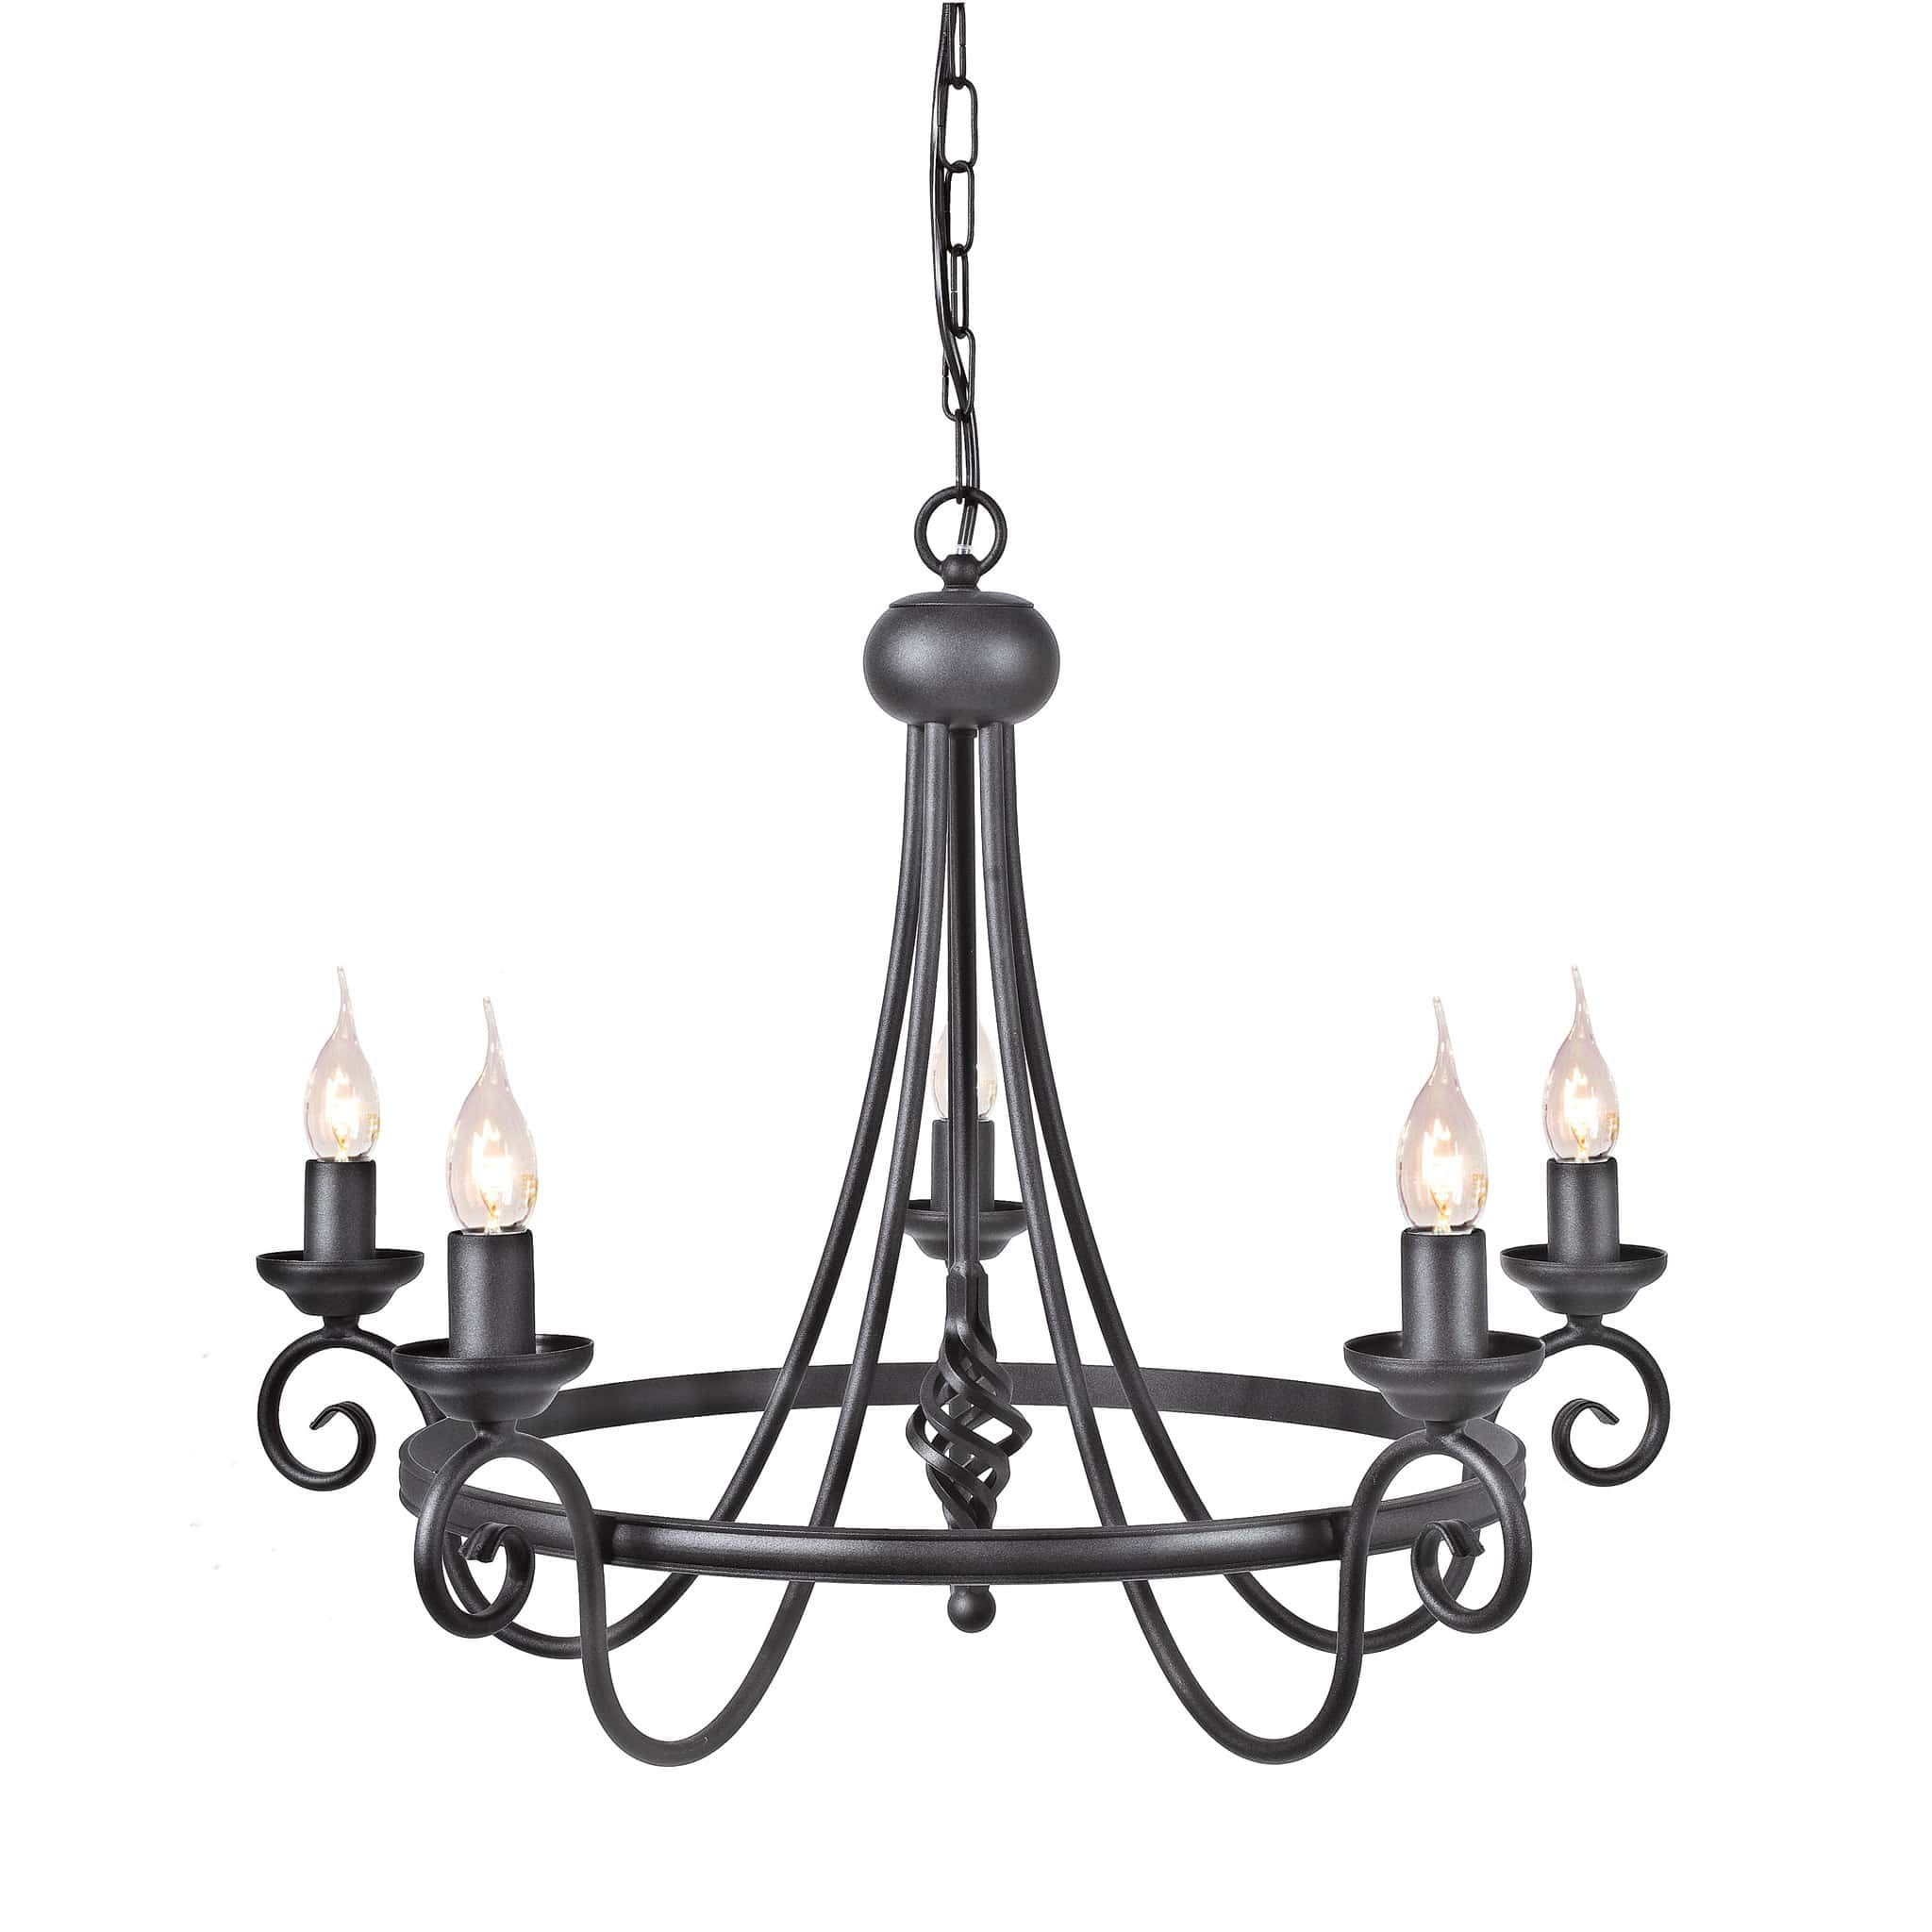 Elstead harlech 5 light black metal candle chandelier home elstead harlech 5 light black metal candle chandelier arubaitofo Choice Image